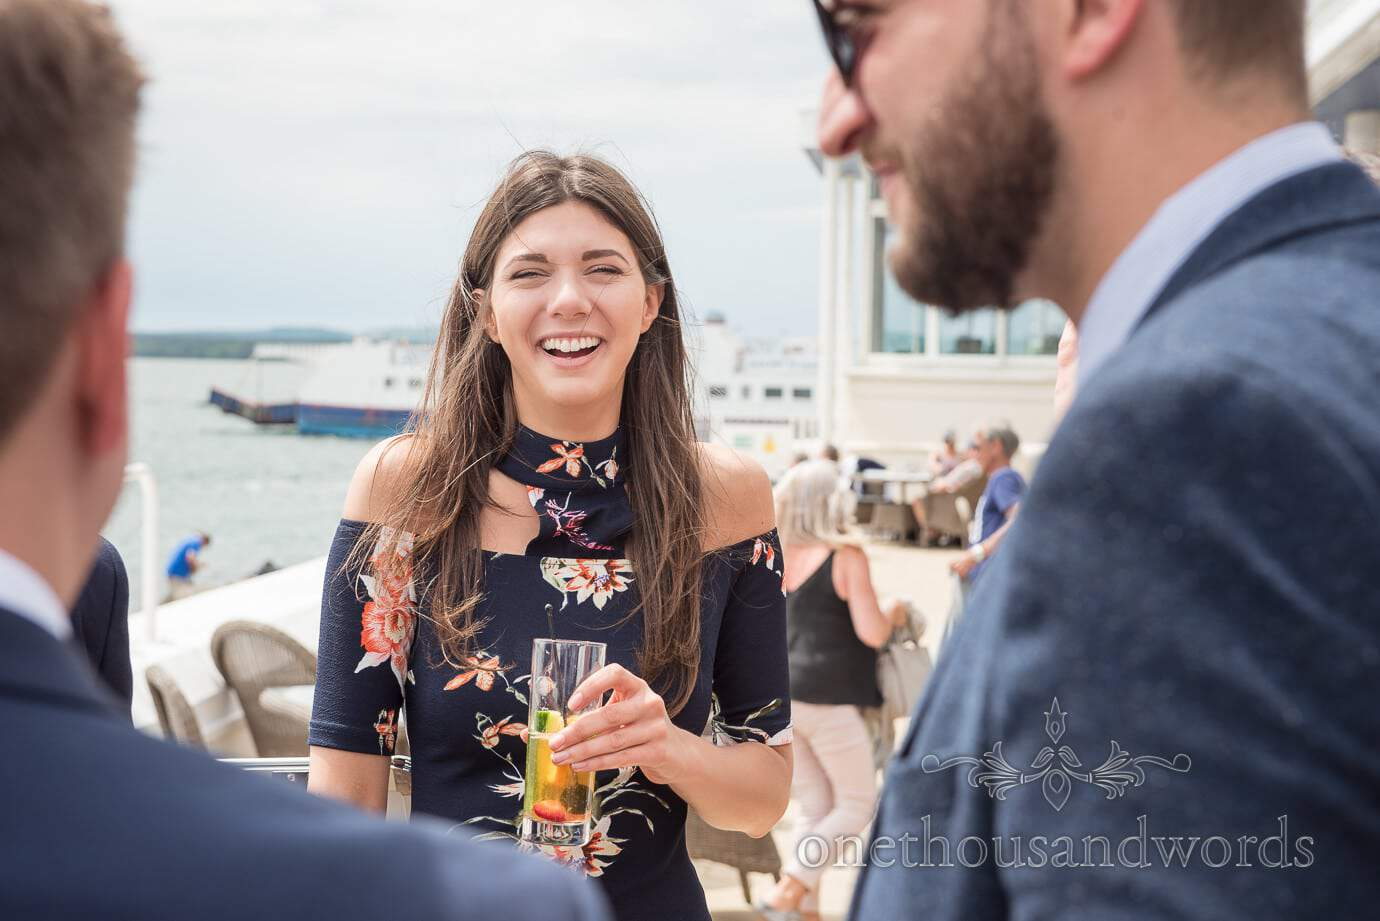 Beautiful wedding guest laughing at wedding drinks reception by the sea with ferry in background